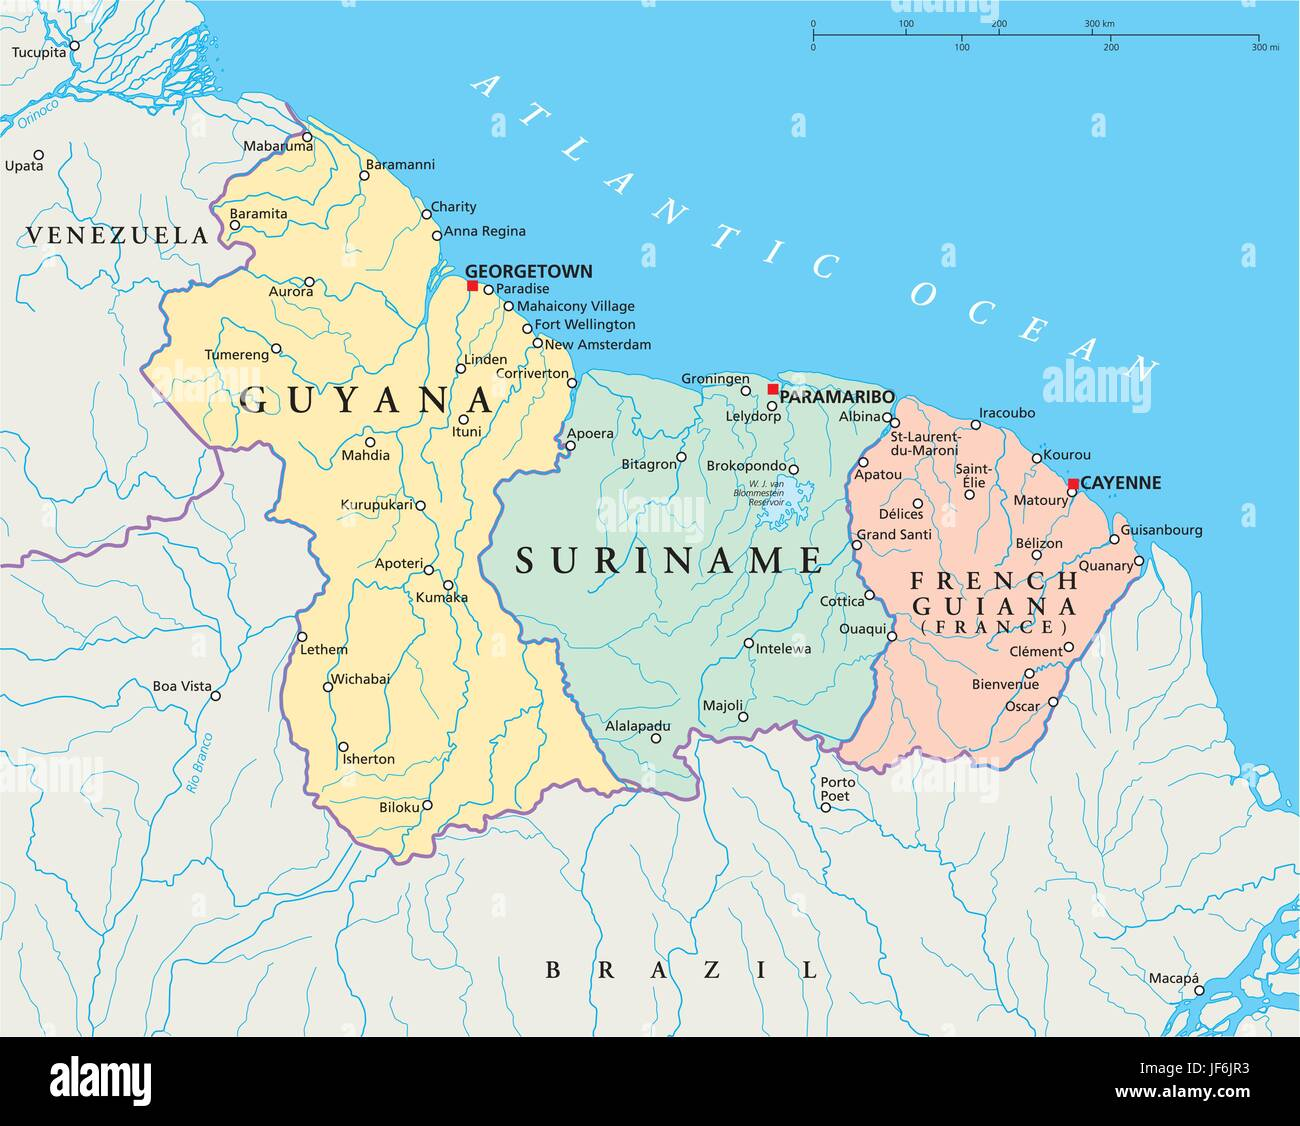 South America Suriname Guyana Map Atlas Map Of The World - Where is suriname on the map